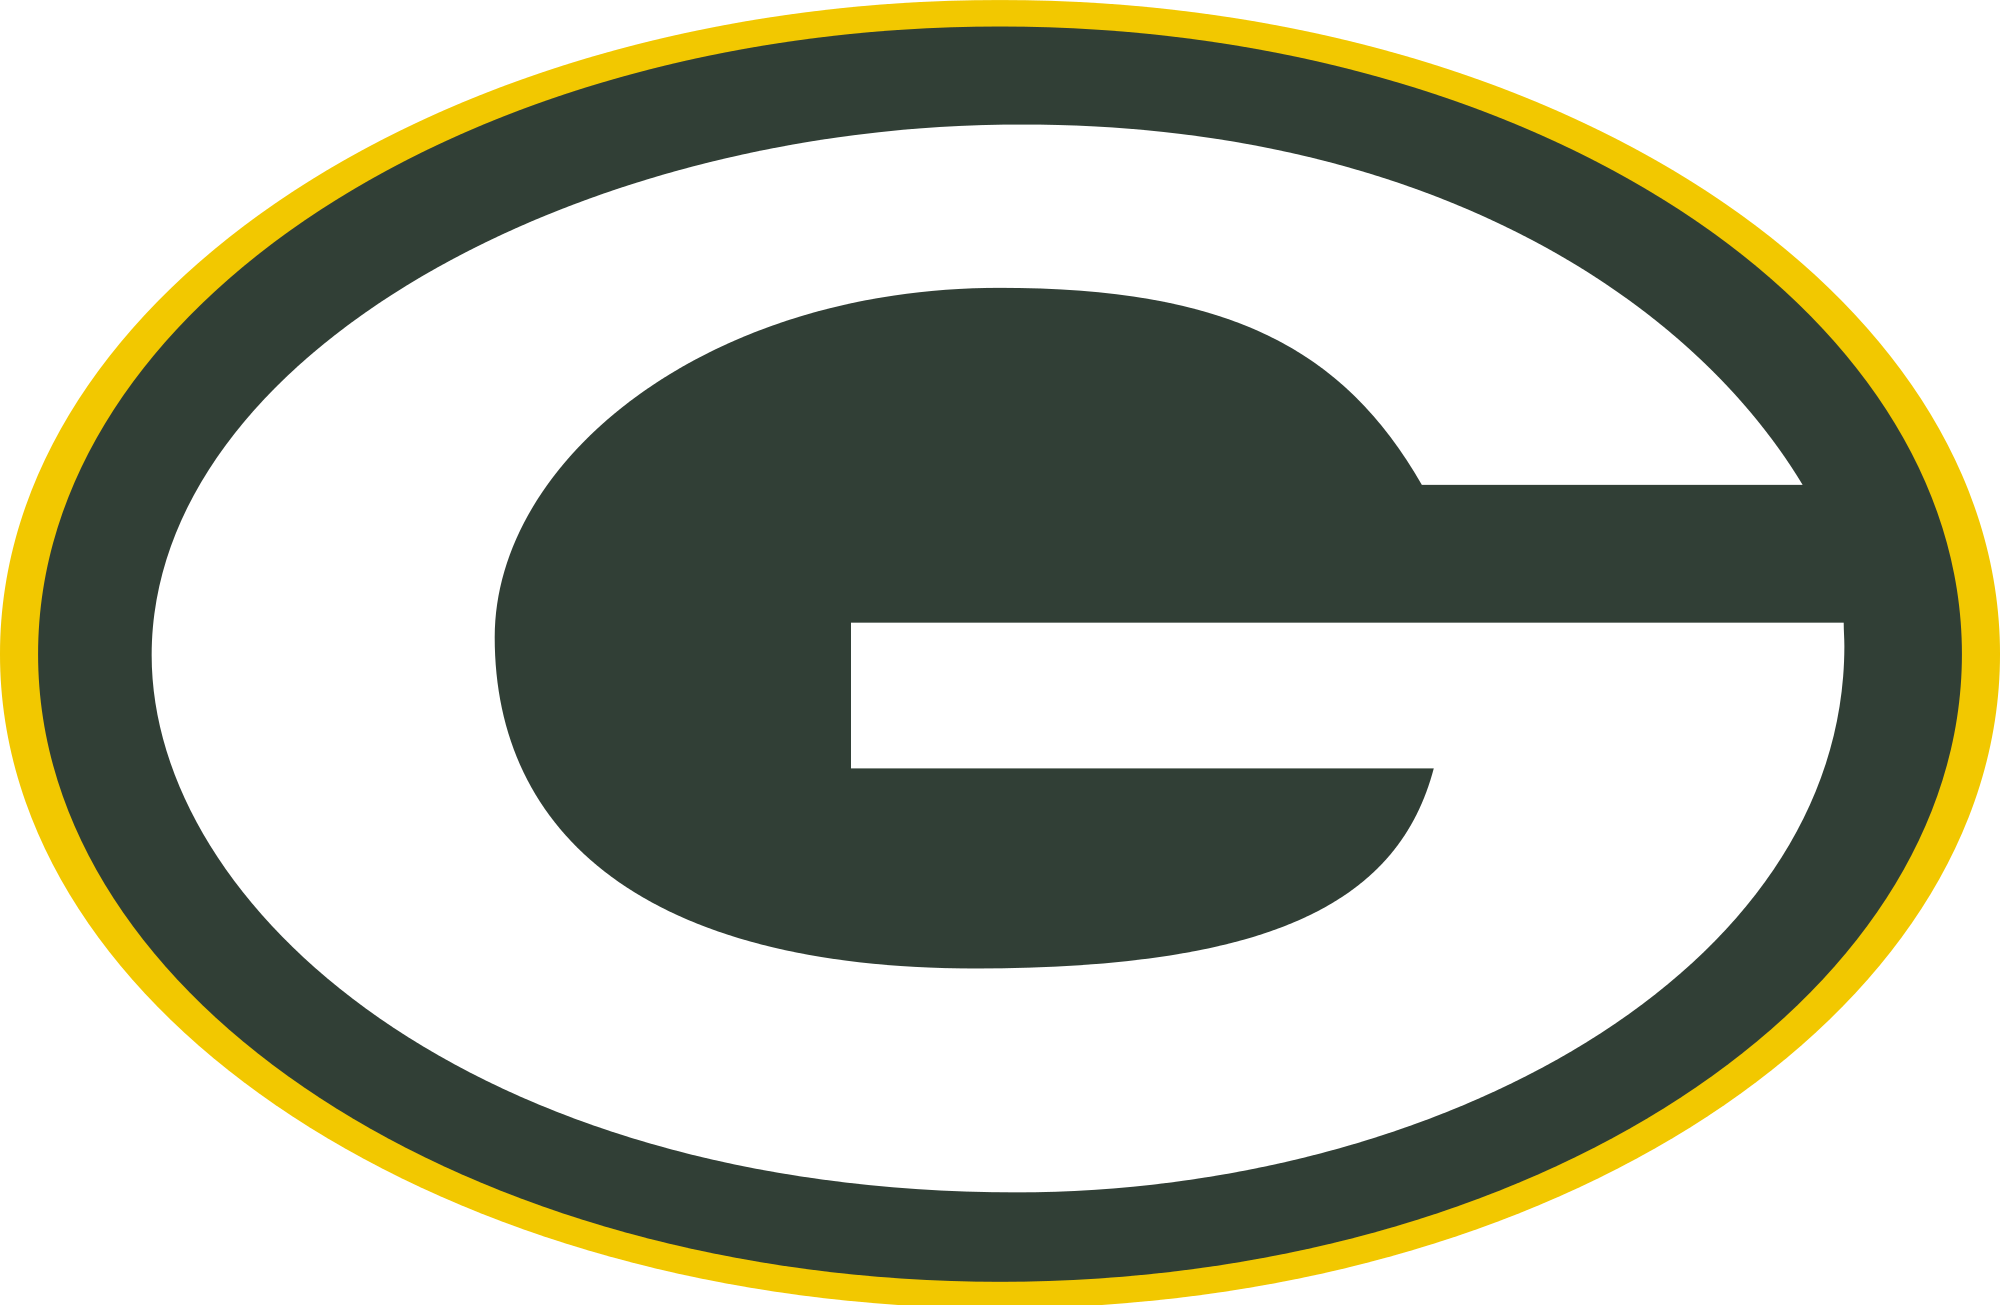 Green bay packer clipart free graphic royalty free stock Free Packers Symbol Picture, Download Free Clip Art, Free Clip Art ... graphic royalty free stock